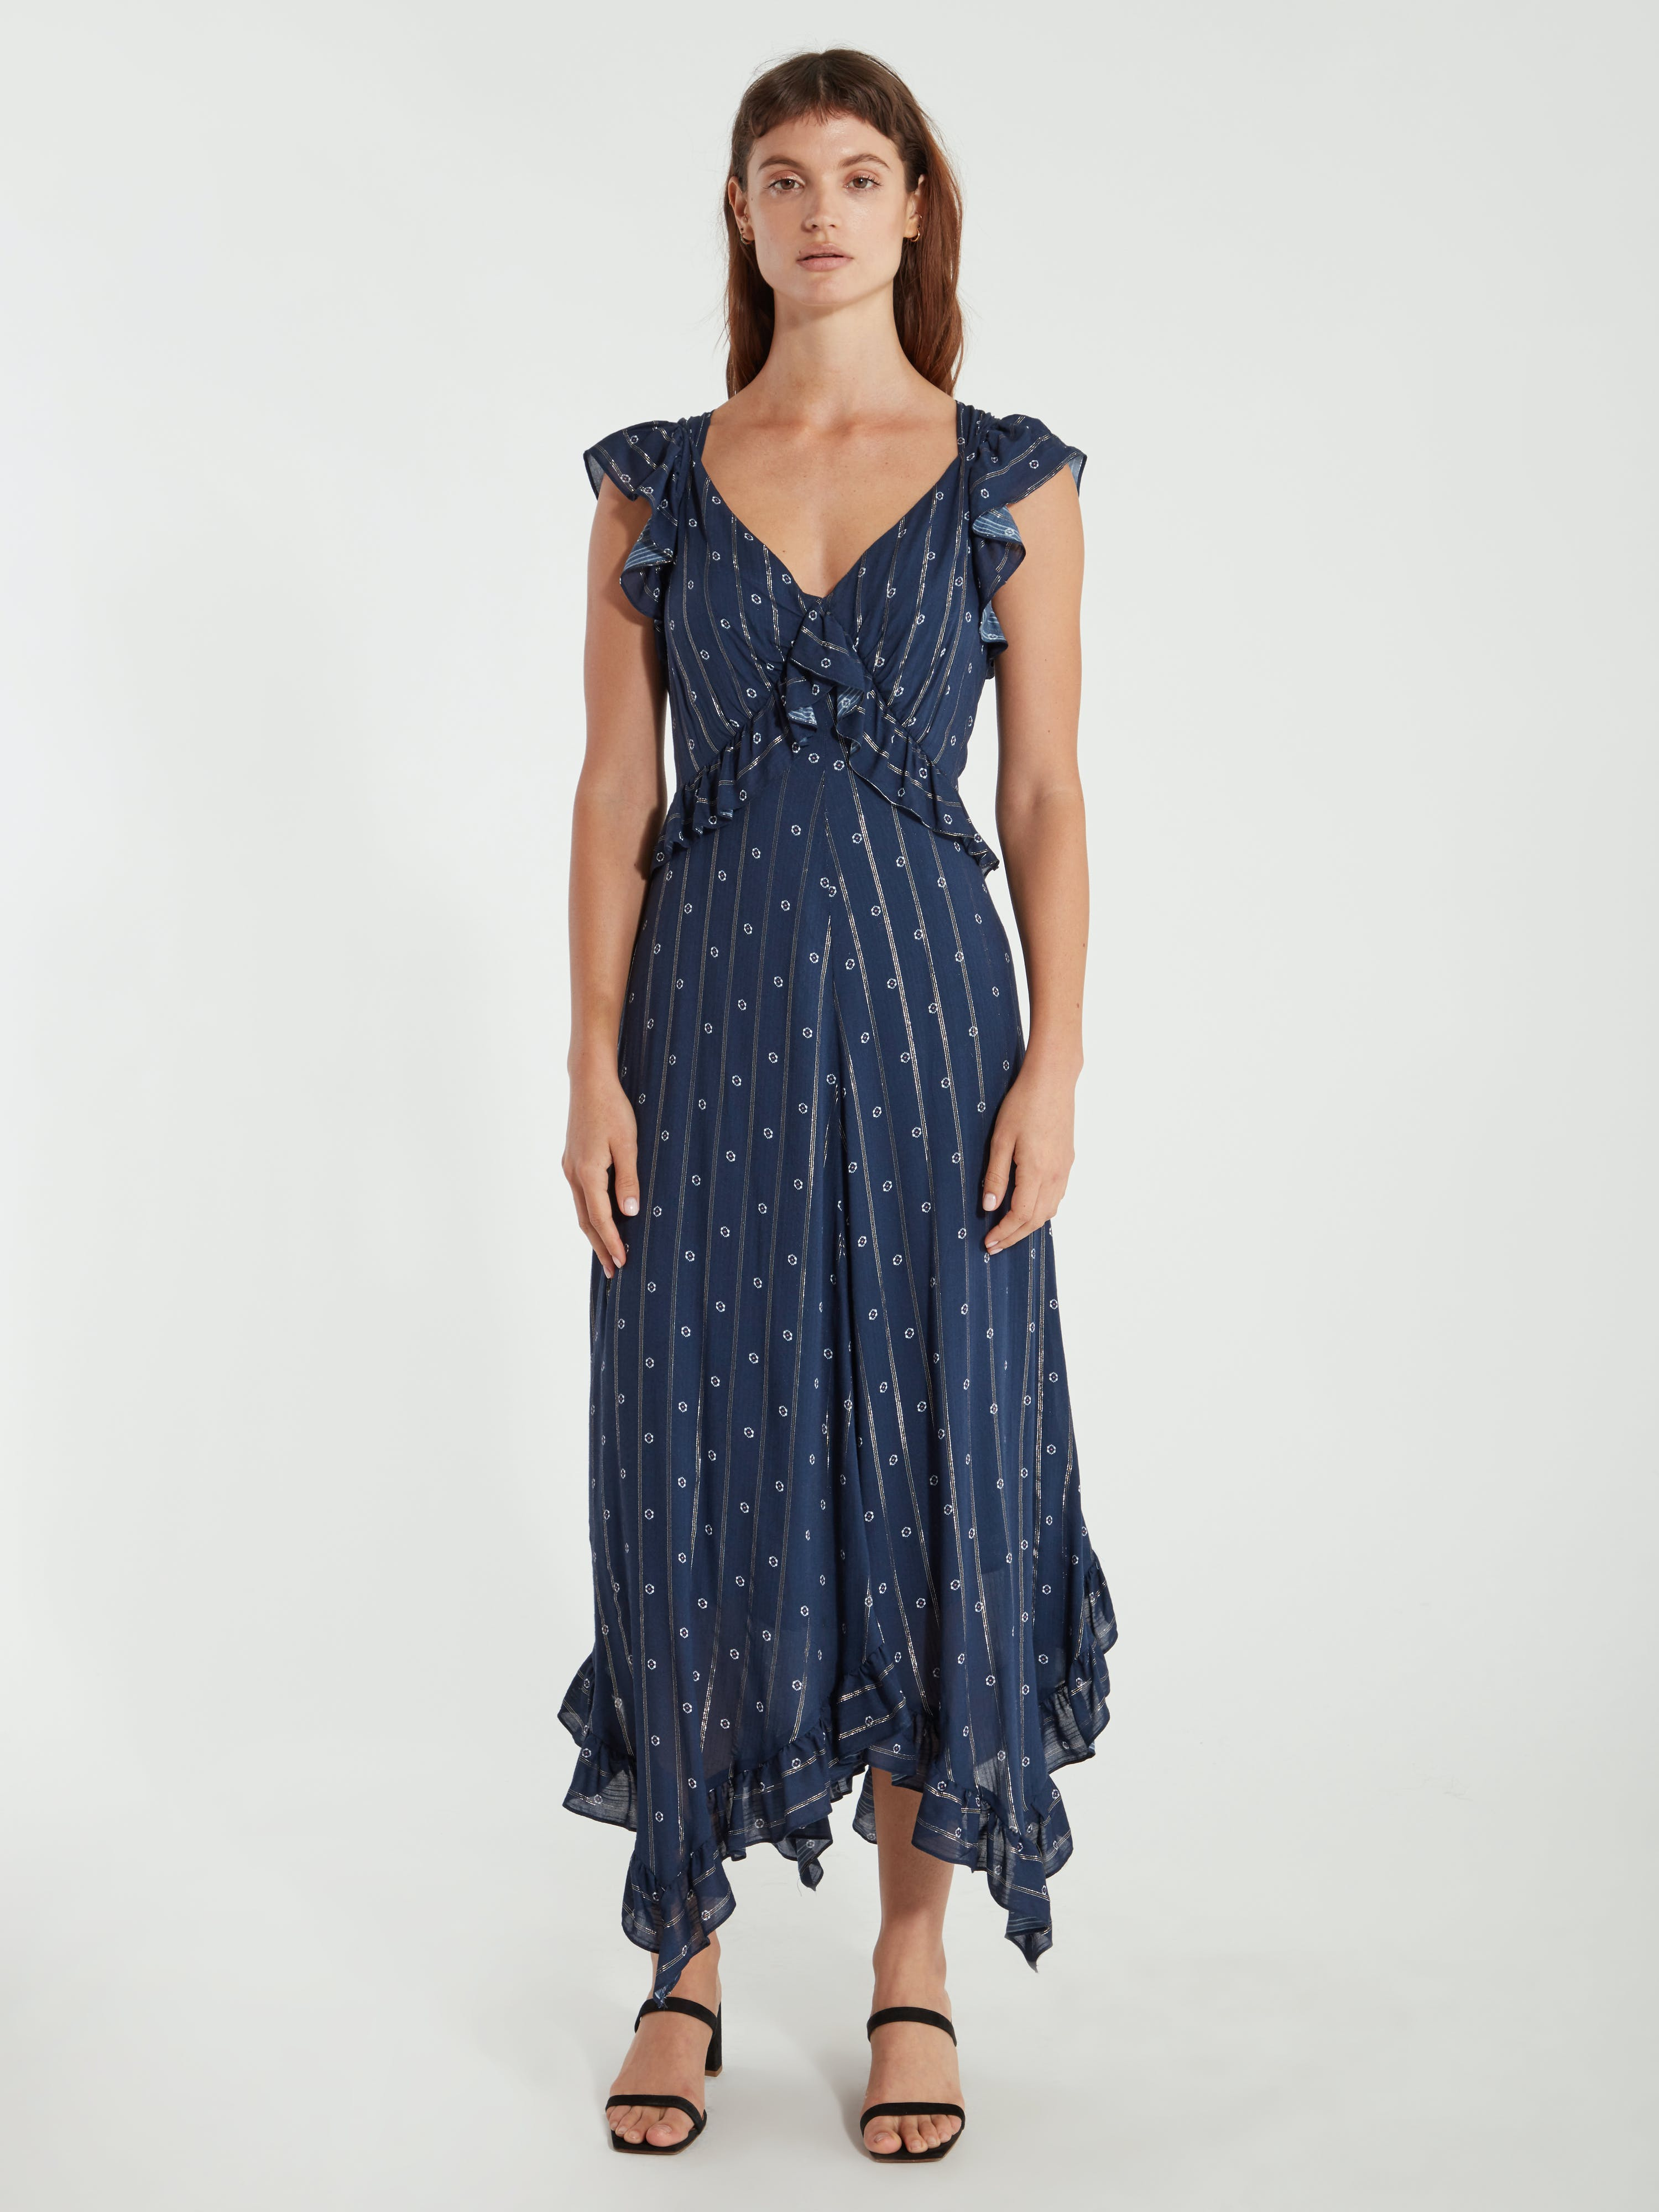 Icons Objects Of Devotion The Day Ruffle Midi Dress - Xs - Also In: M, L, S In Blue